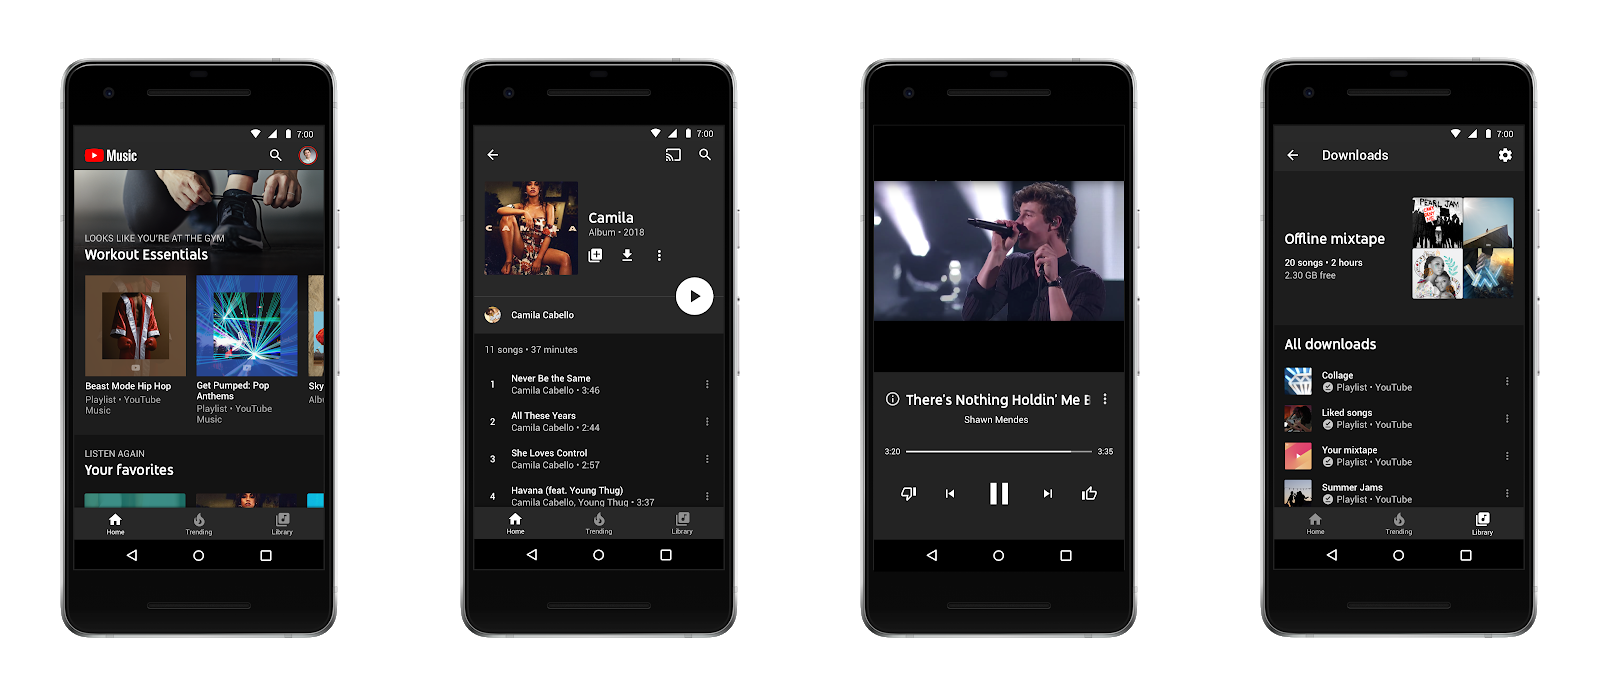 YouTube Music a new music streaming service is coming soon